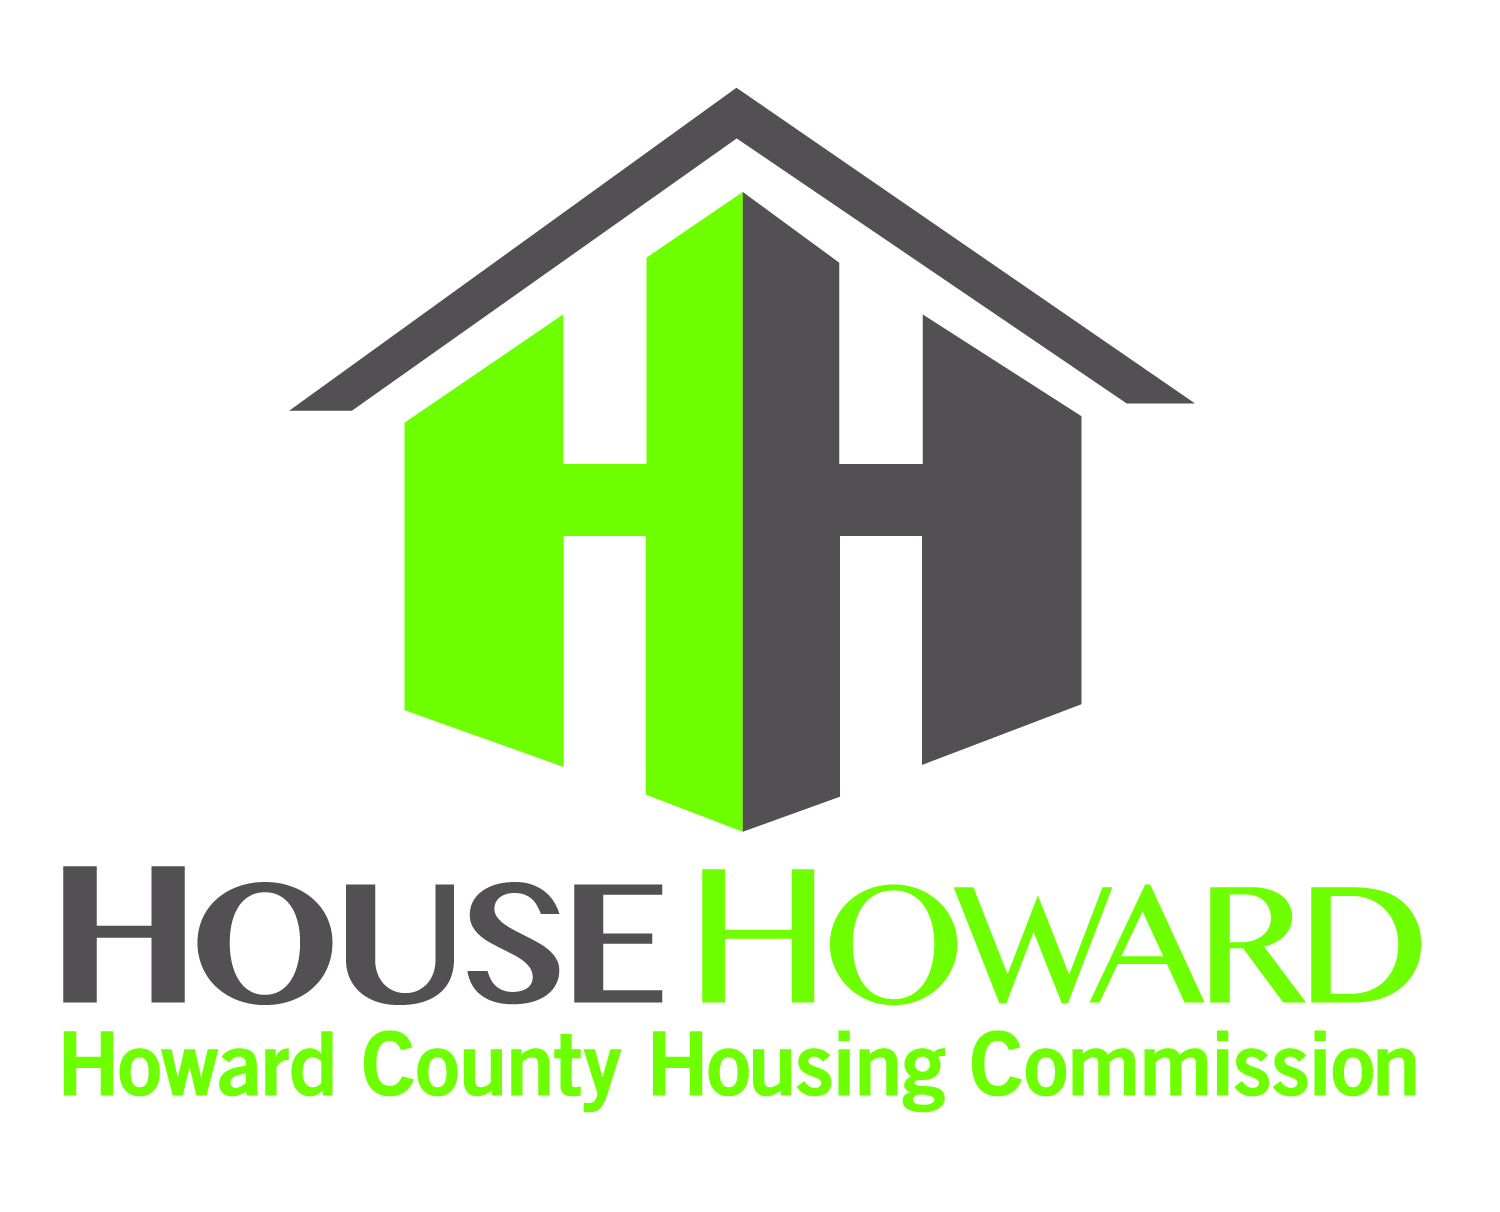 Howard County Housing Commission's Logo